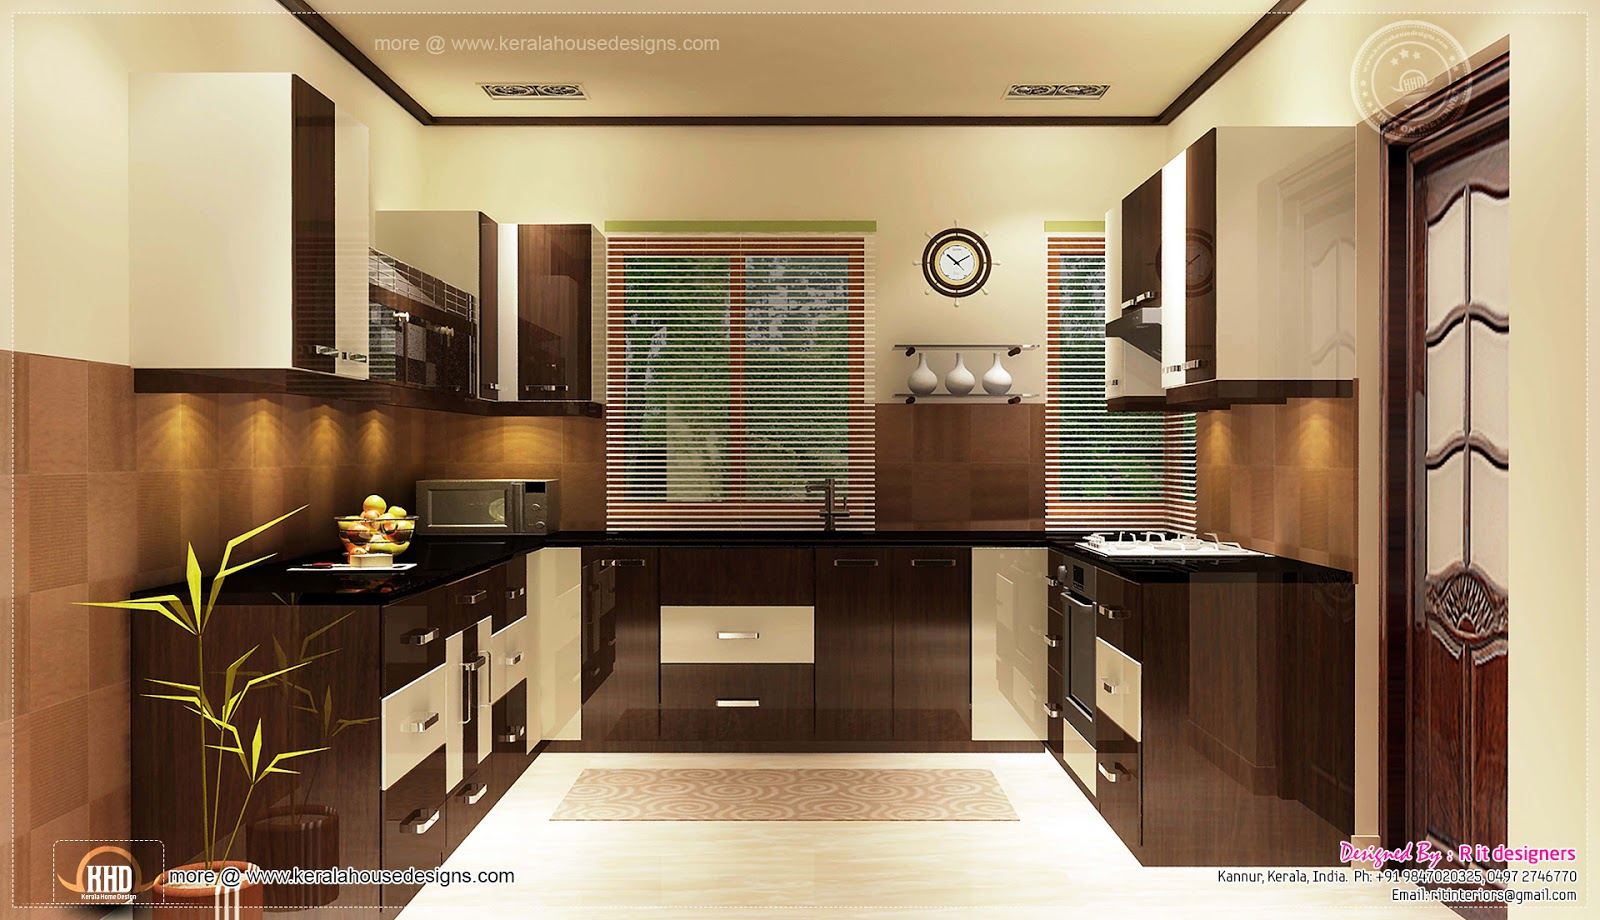 Home interior designs by rit designers kerala home for Kitchen dining hall design